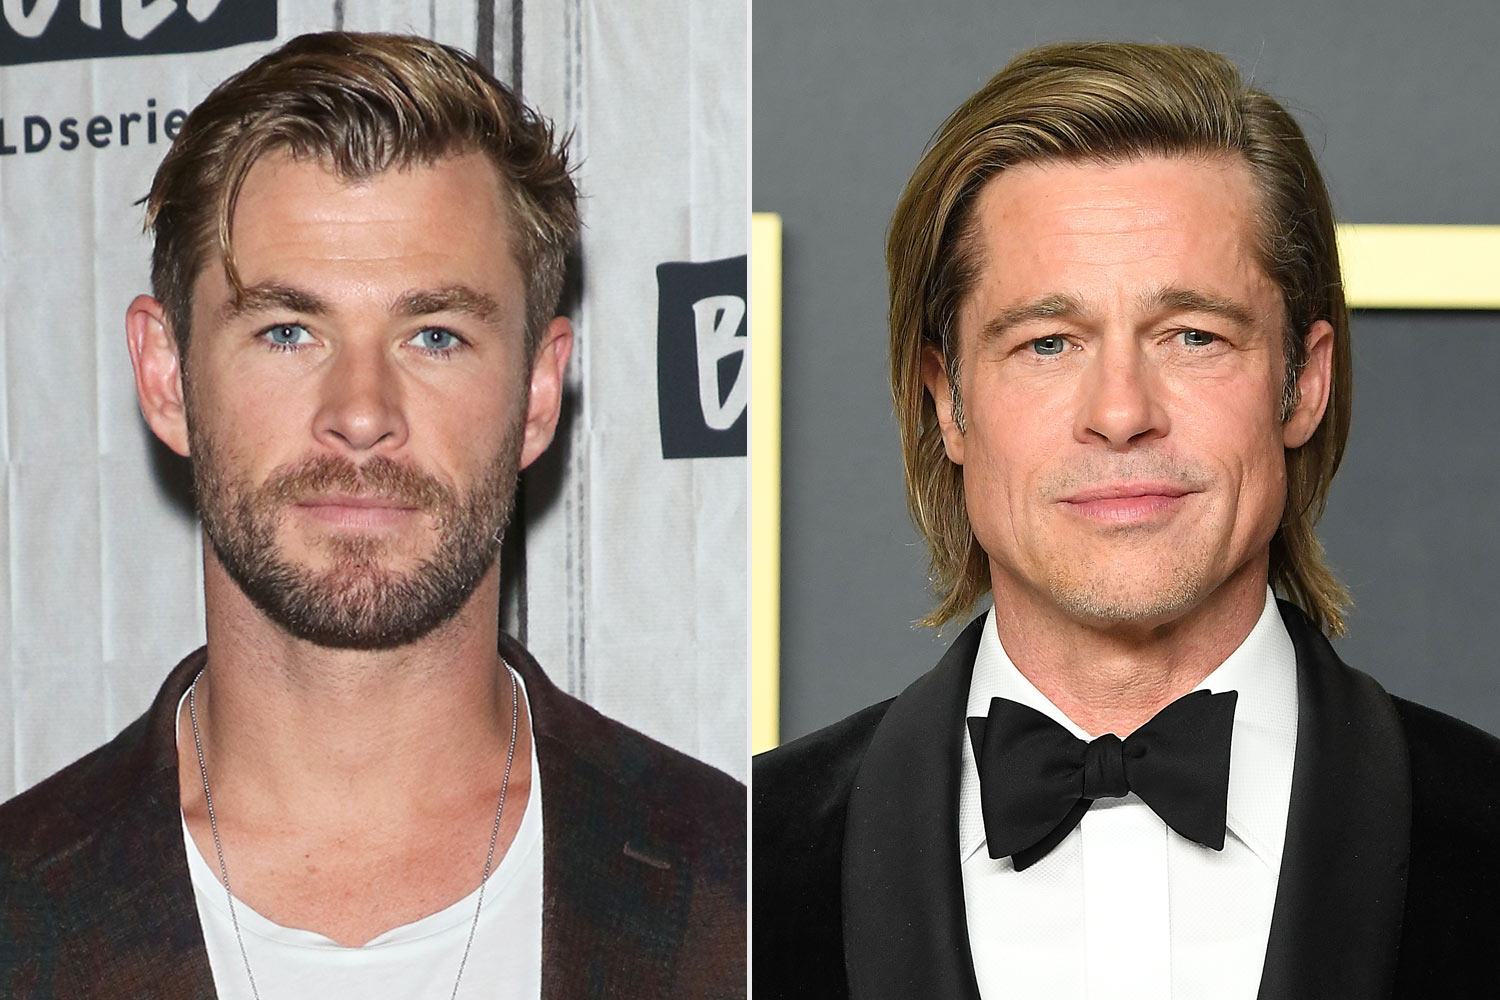 Chris Hemsworth and brad pitt